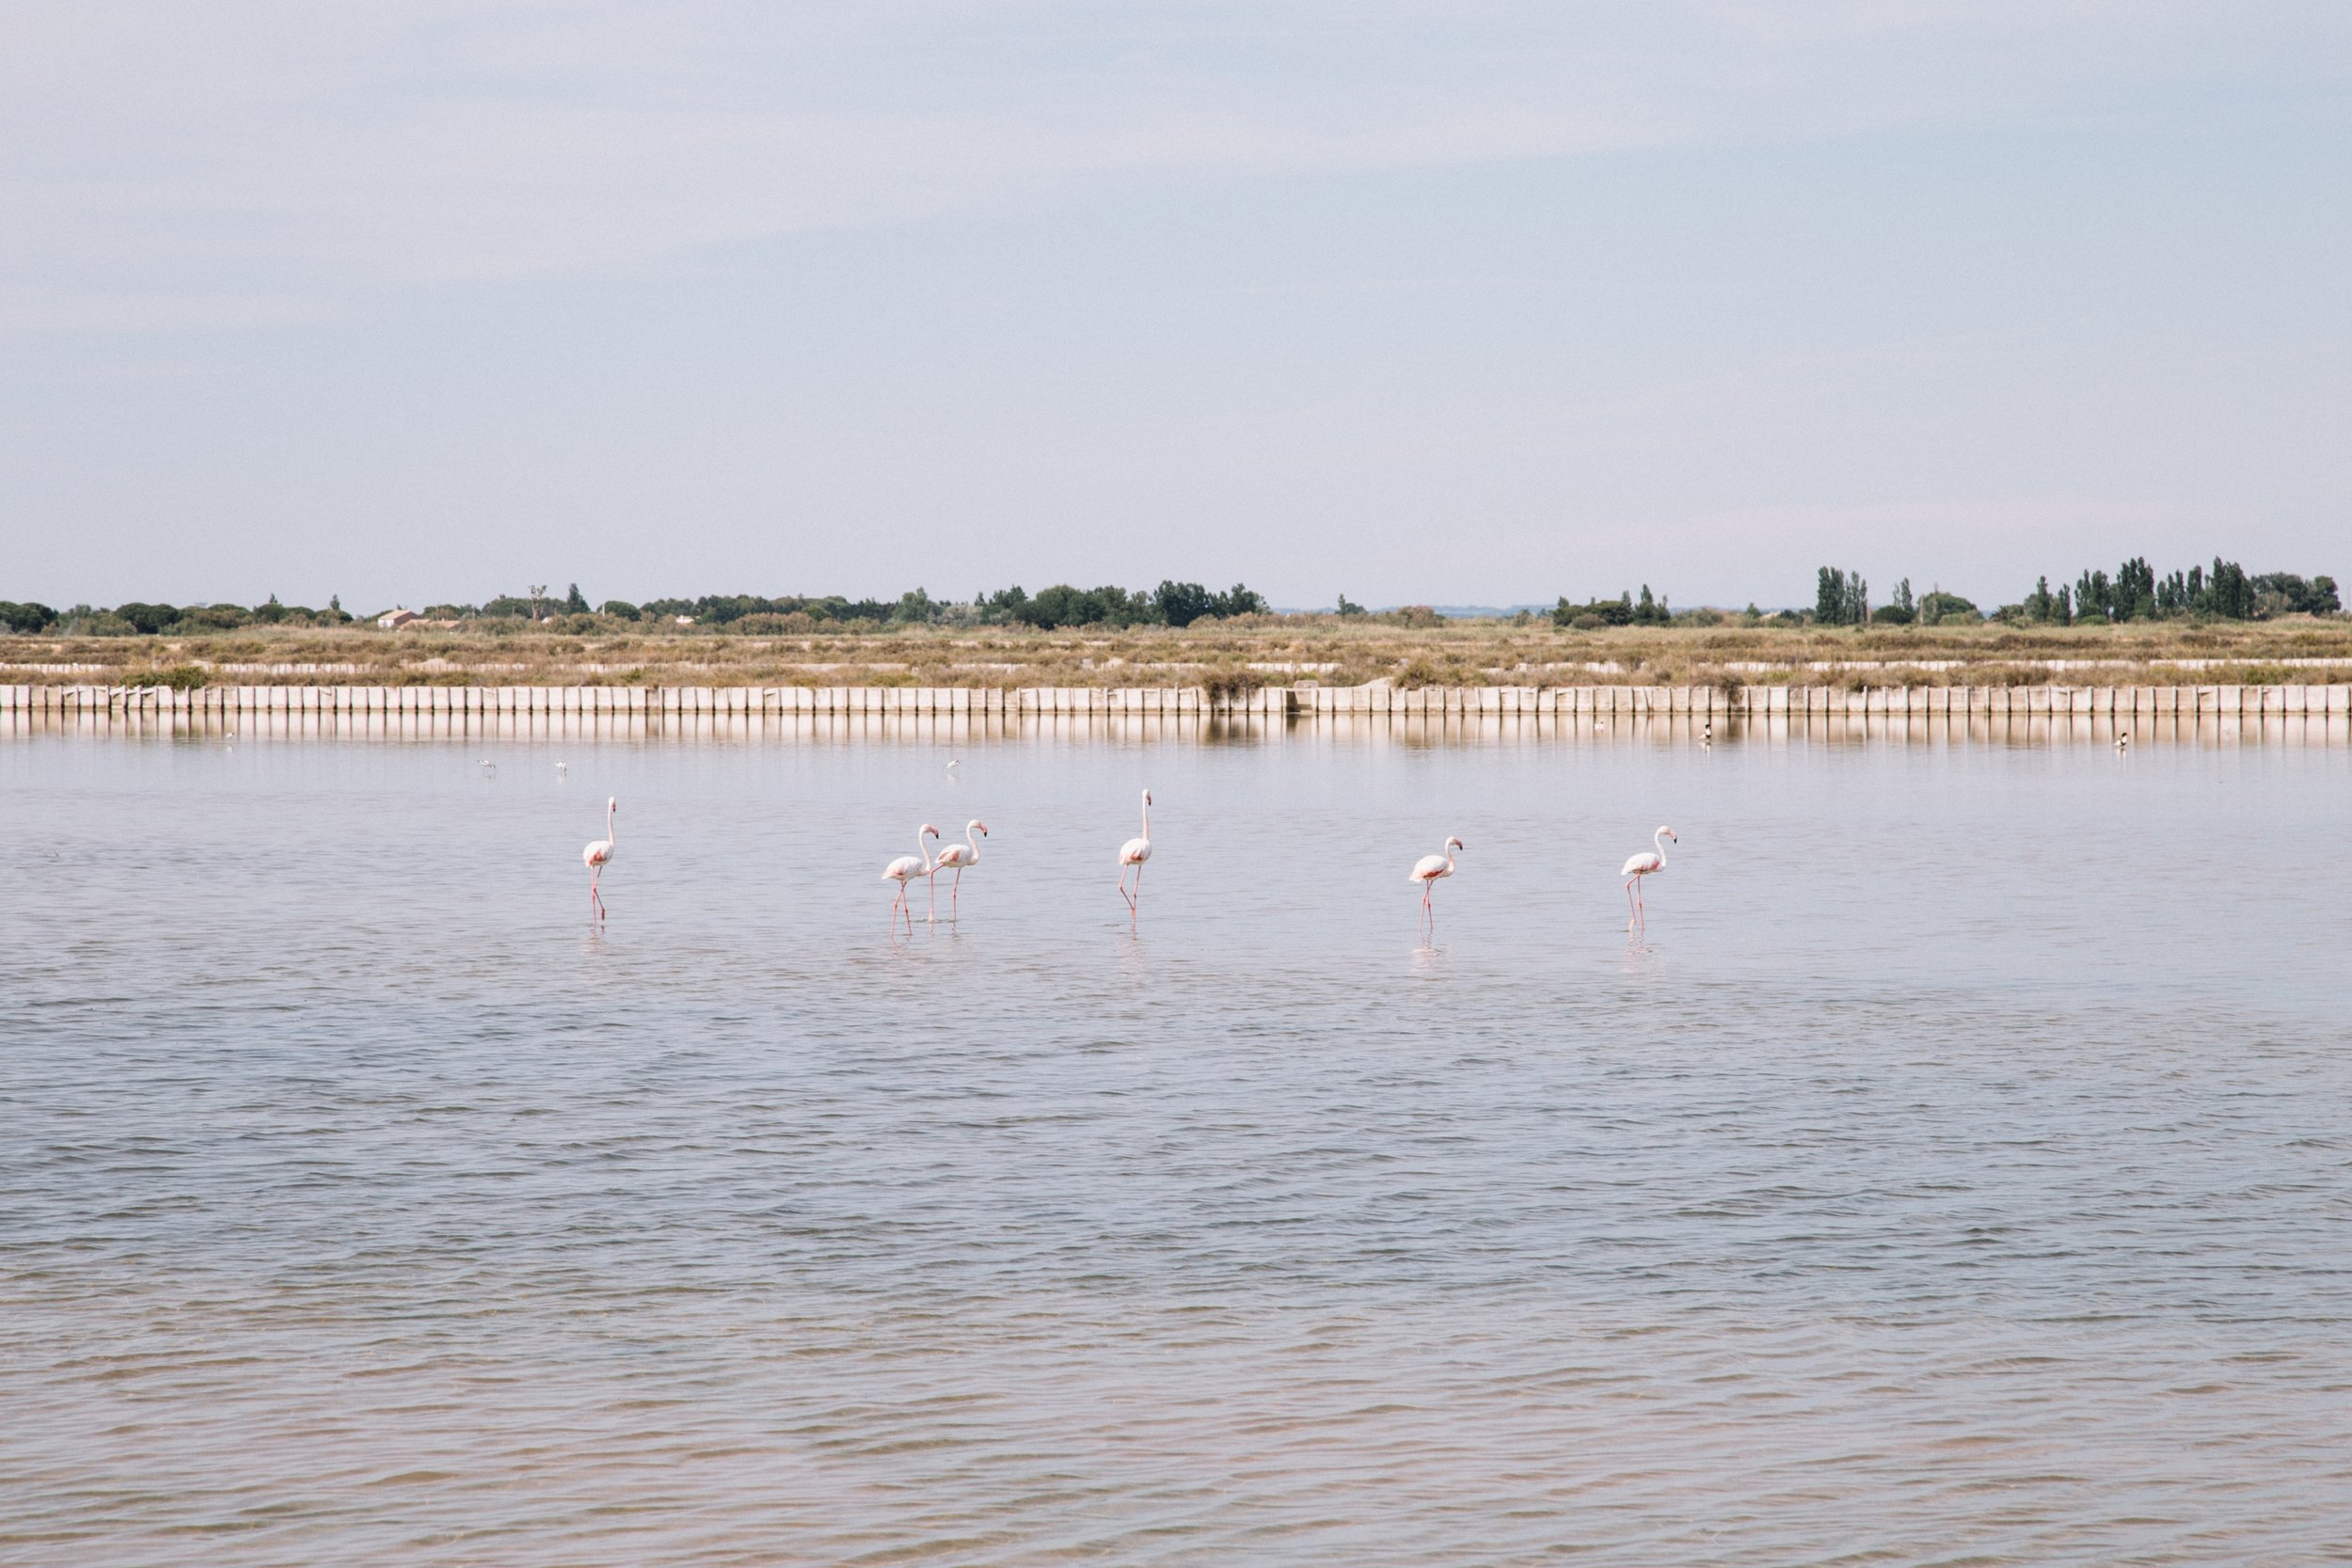 Aigues-mortes-salin-flamants-roses-.jpg